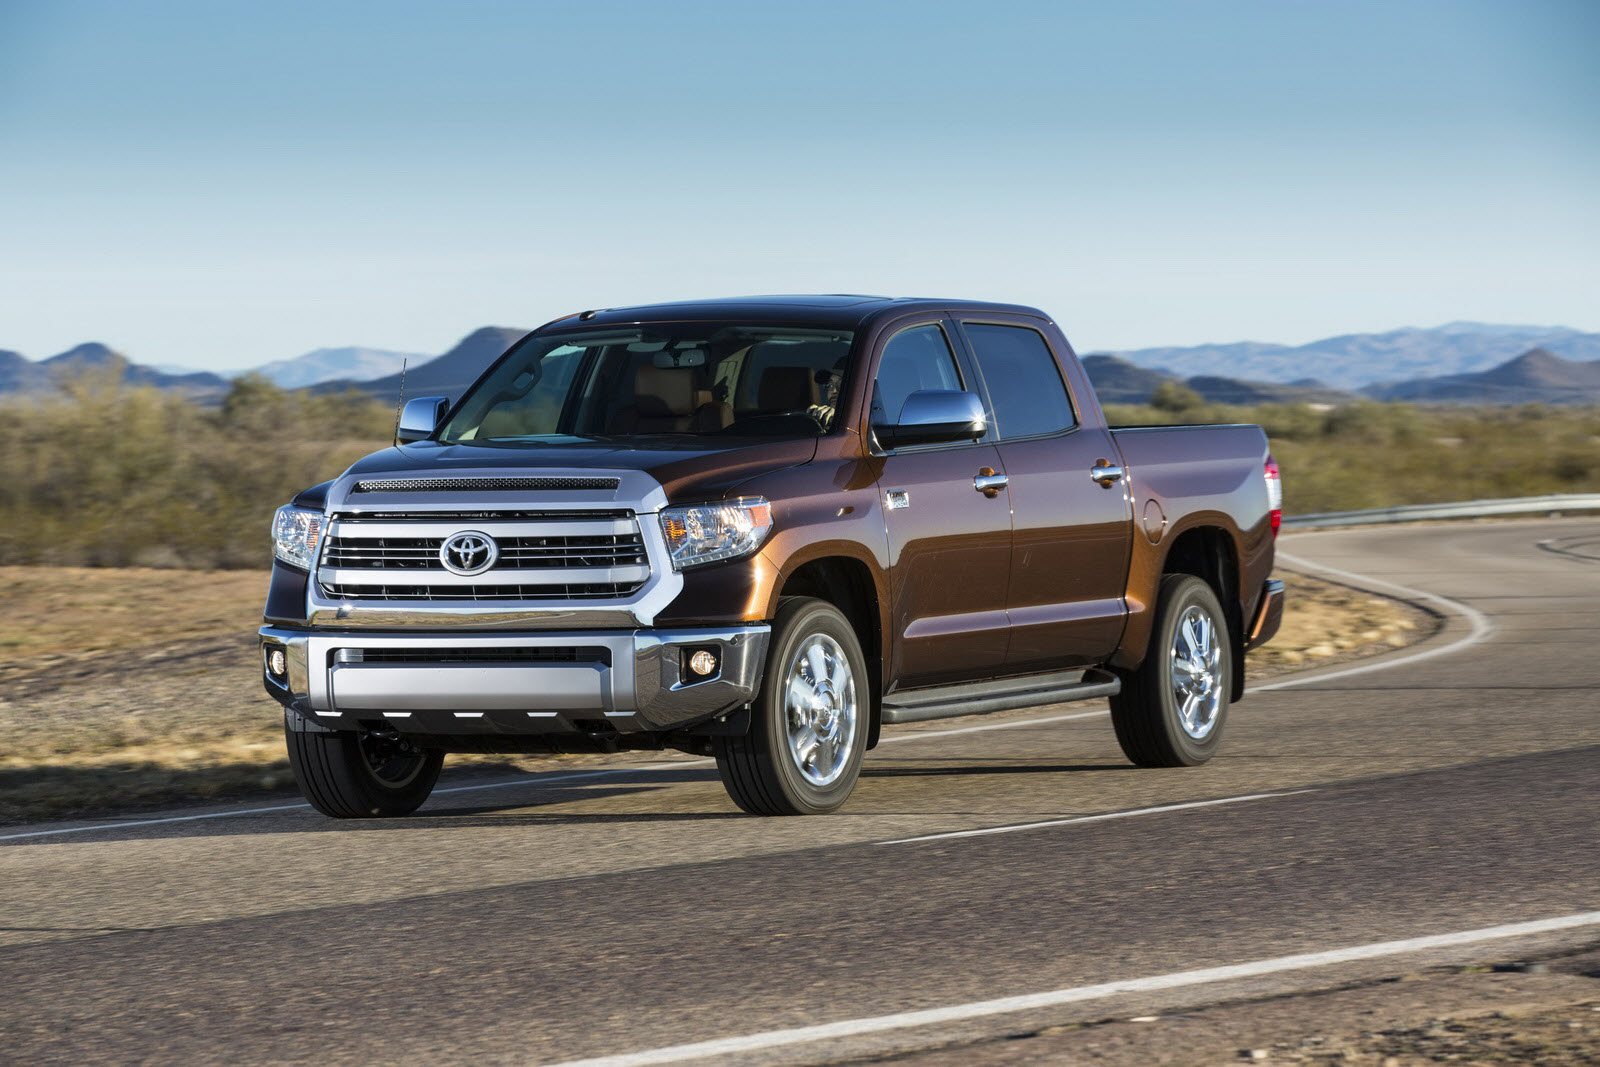 toyota unveils 2014 redesigned tundra full size pickup truck. Black Bedroom Furniture Sets. Home Design Ideas